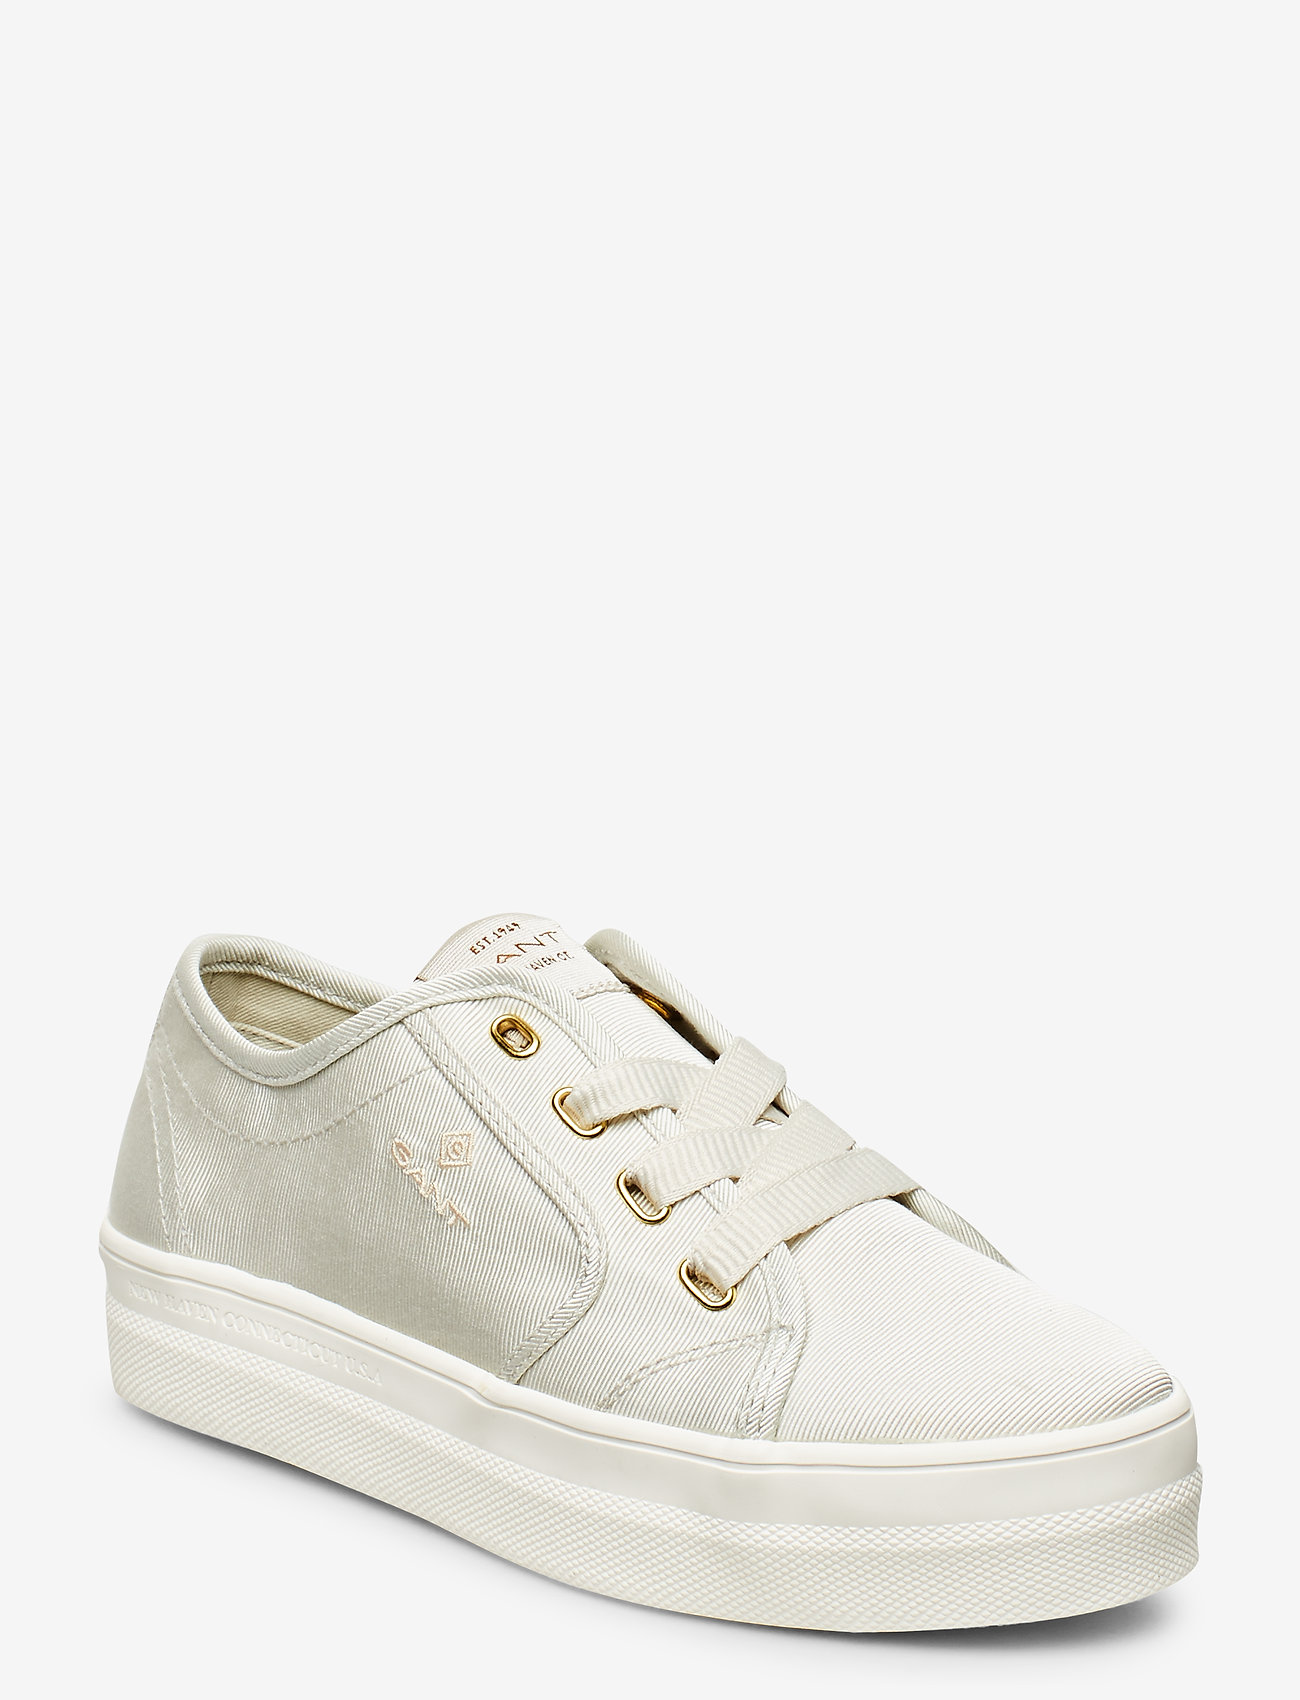 GANT - Leisha Low lace shoes - låga sneakers - silver gray